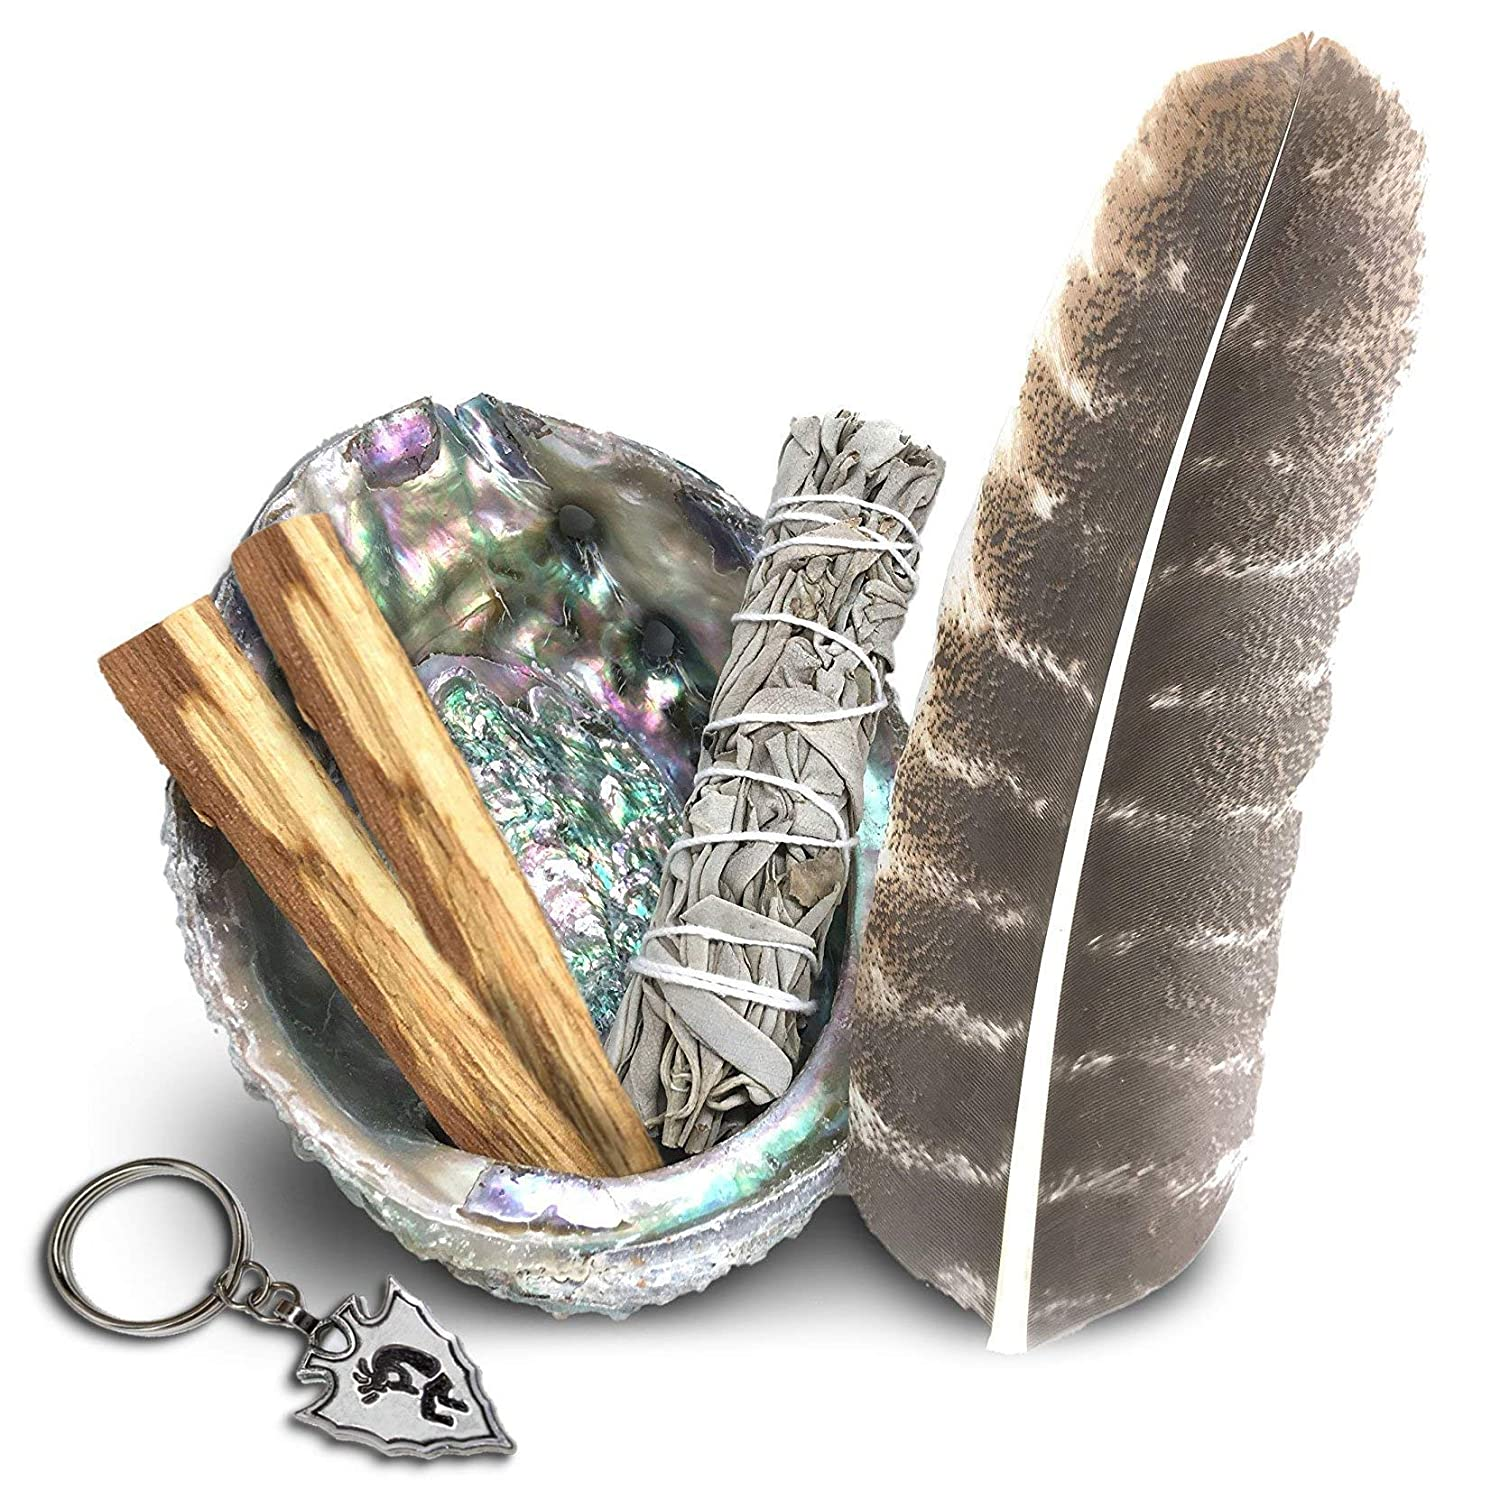 Smudge Kit - Sage, Palo Santo, Abalone Shell, Feather & More! Healing, Purifying, Meditating & Incense JL Local